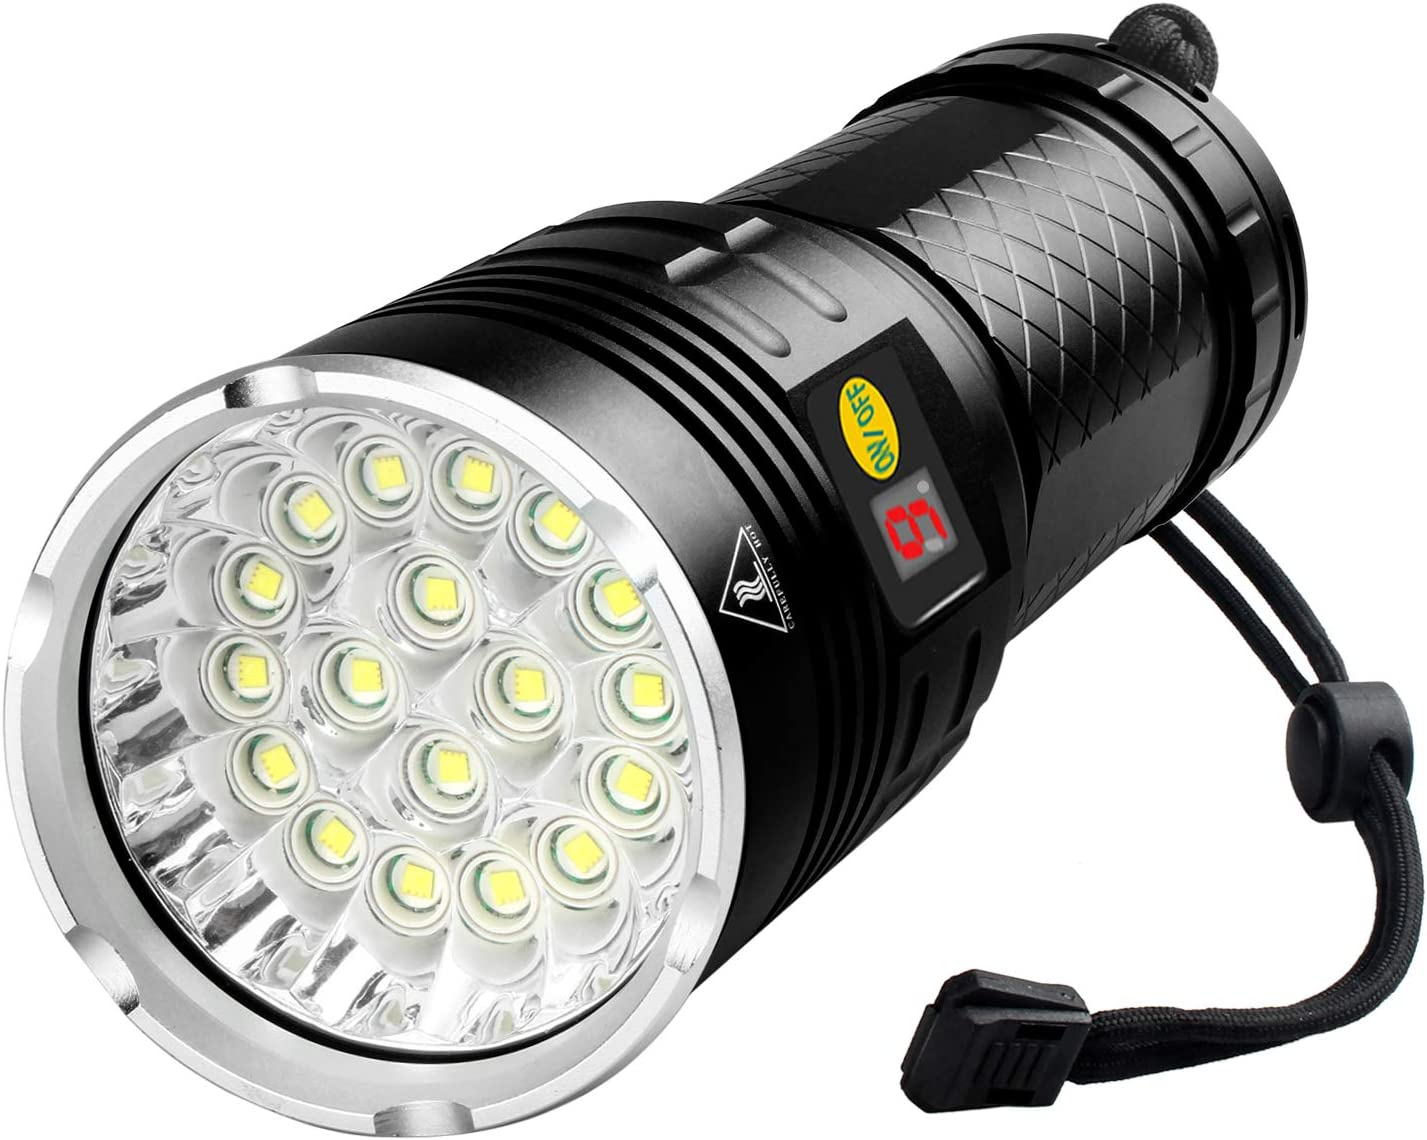 Woputne 18 LEDs Flashlight 10000 Lumen, Type-C Rechargeable